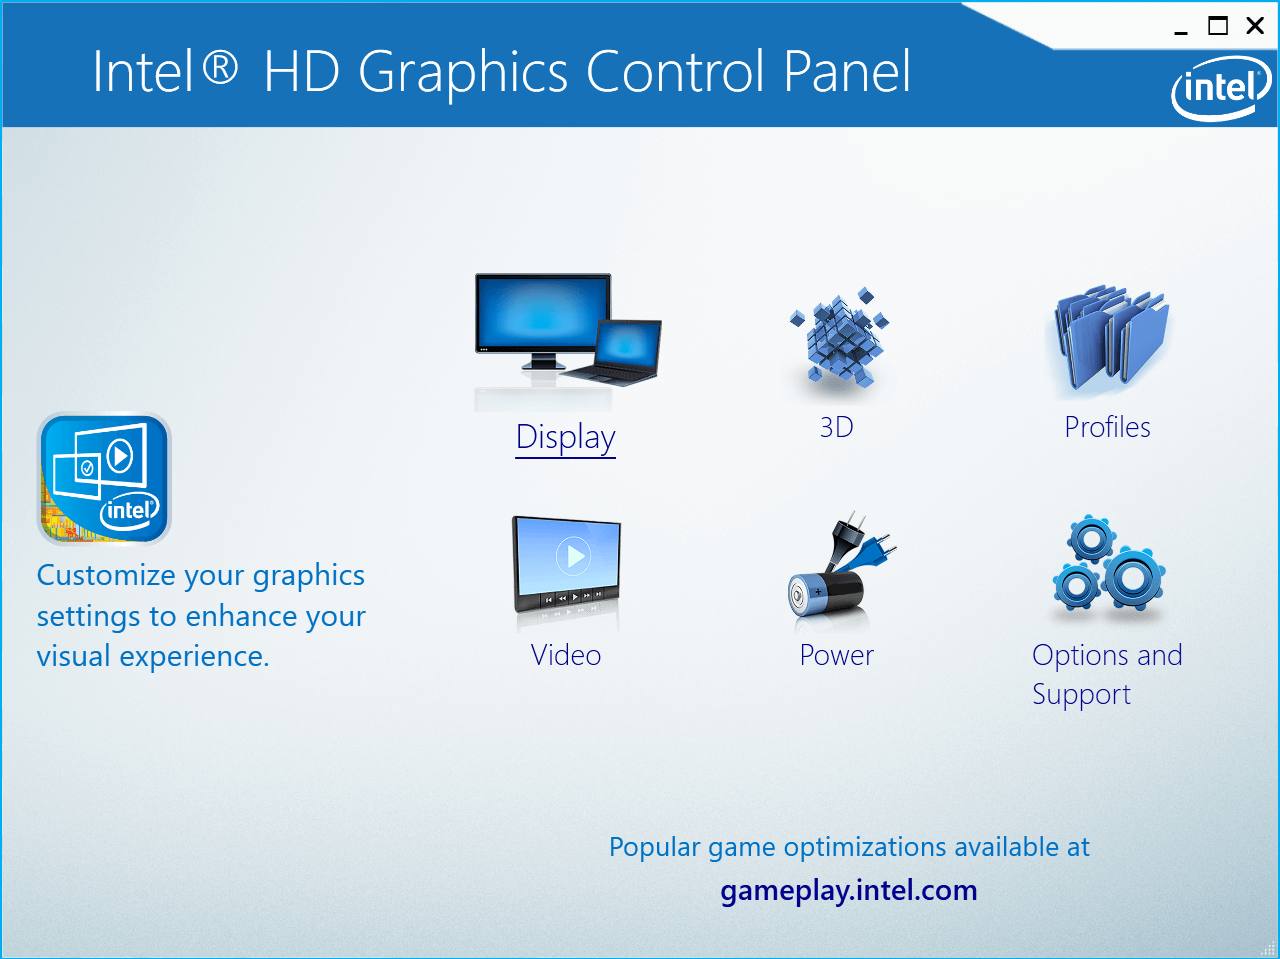 Now click on Display from the Intel HD Graphics Control Panel